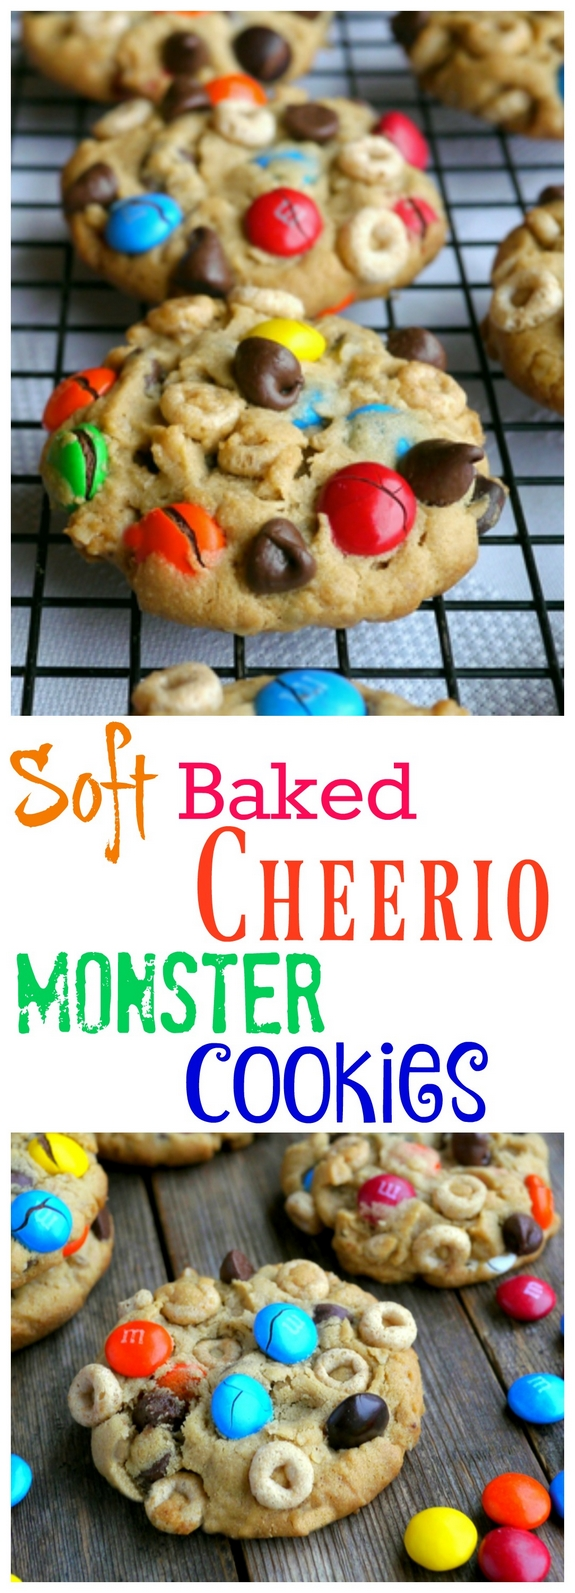 Soft Baked Cheerio Monster Cookies need to be made soon